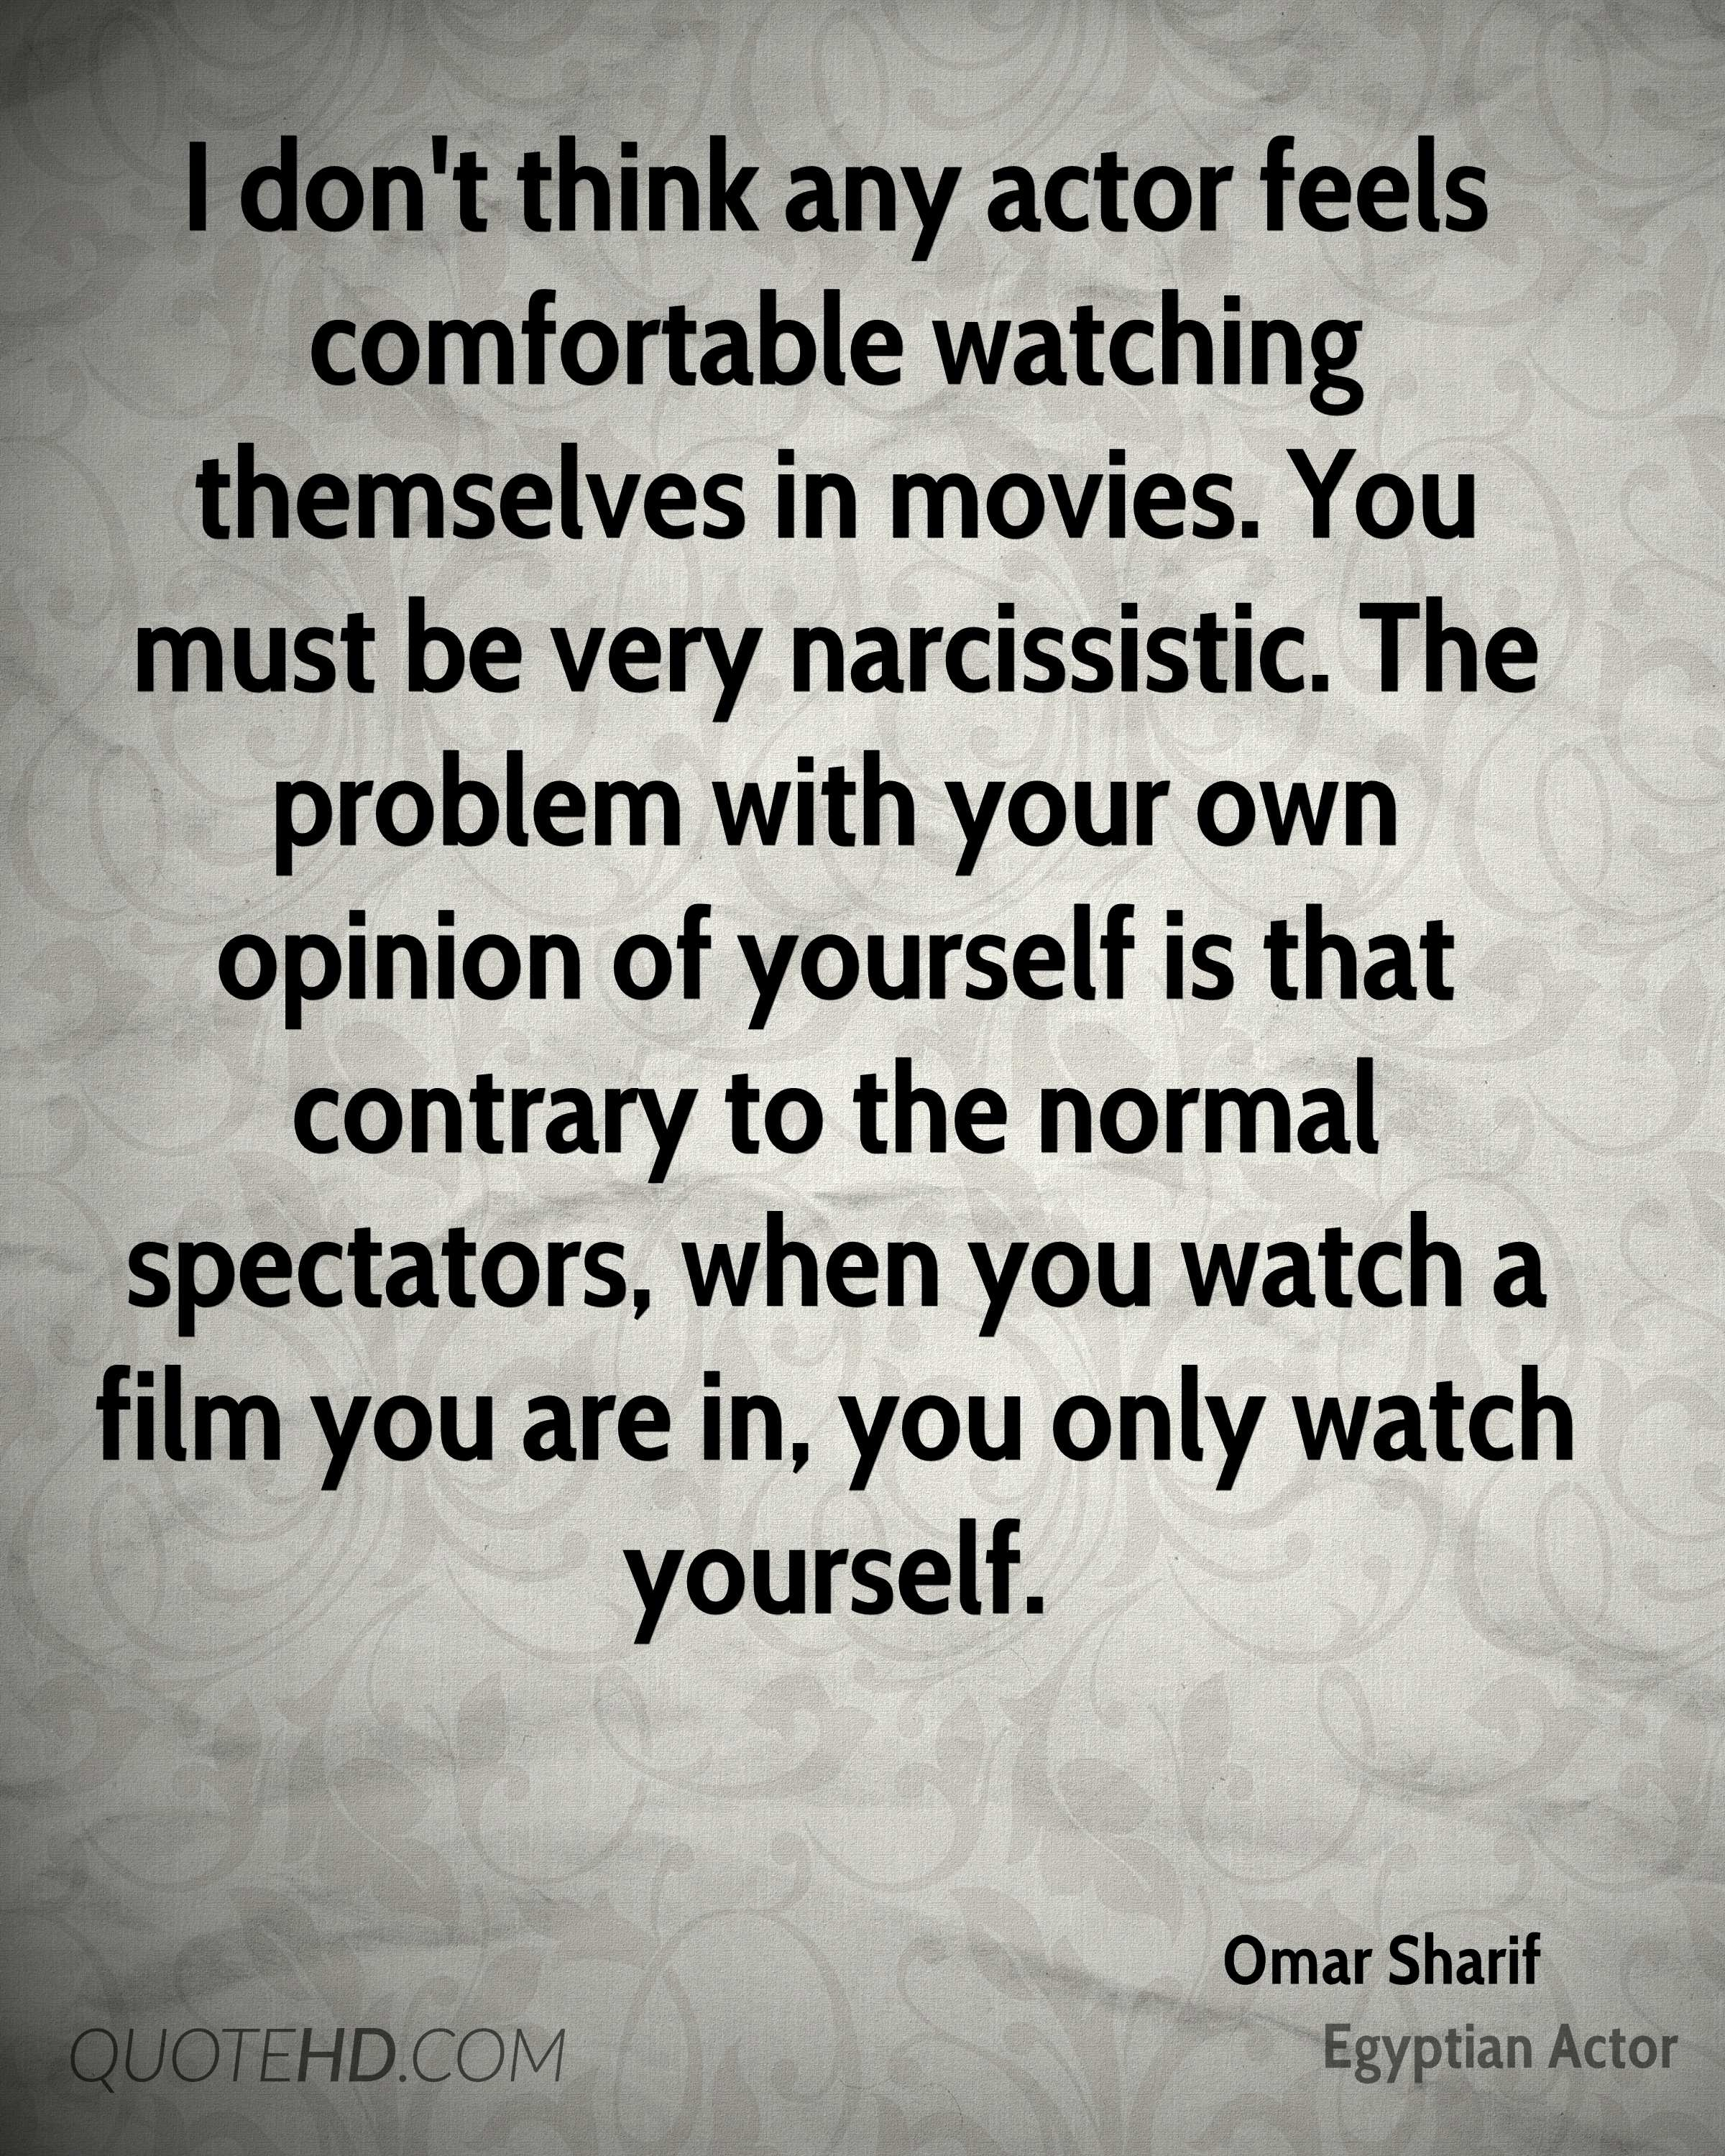 I don't think any actor feels comfortable watching themselves in movies. You must be very narcissistic. The problem with your own opinion of yourself is that contrary to the normal spectators, when you watch a film you are in, you only watch yourself.